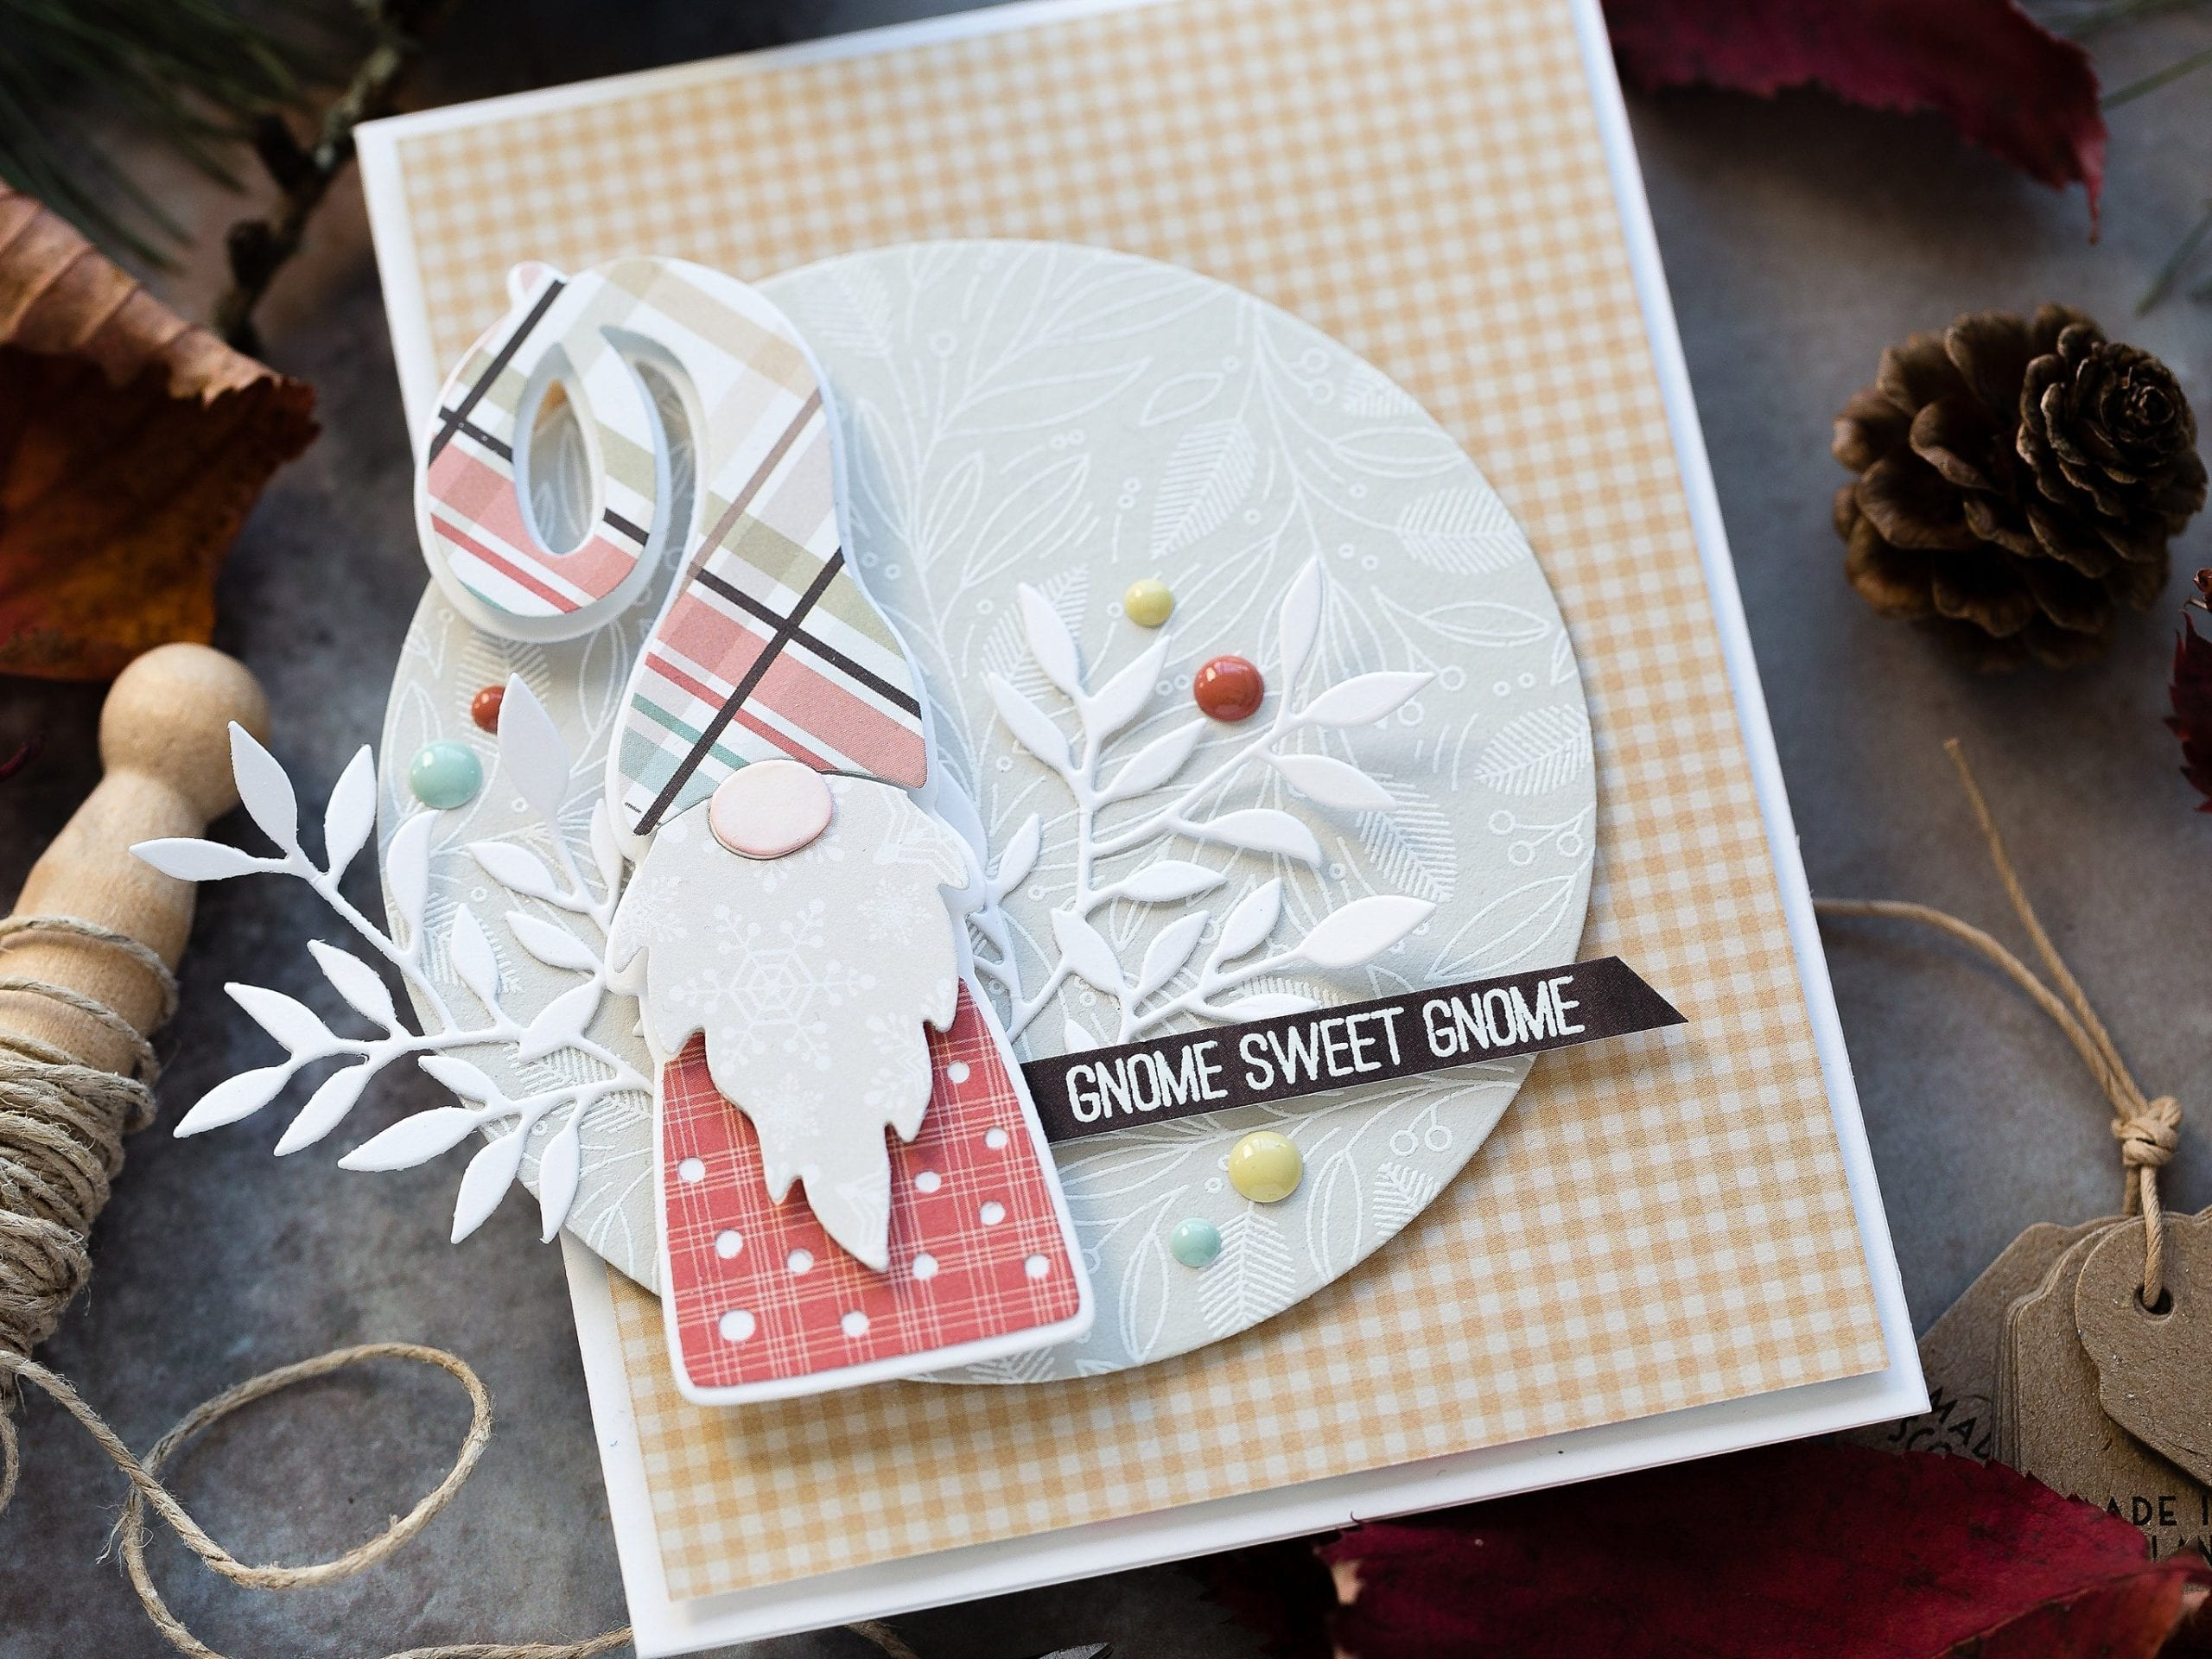 Paper pieced, die-cut gnome handmade card by Debby Hughes using supplies from Simon Says Stamp.